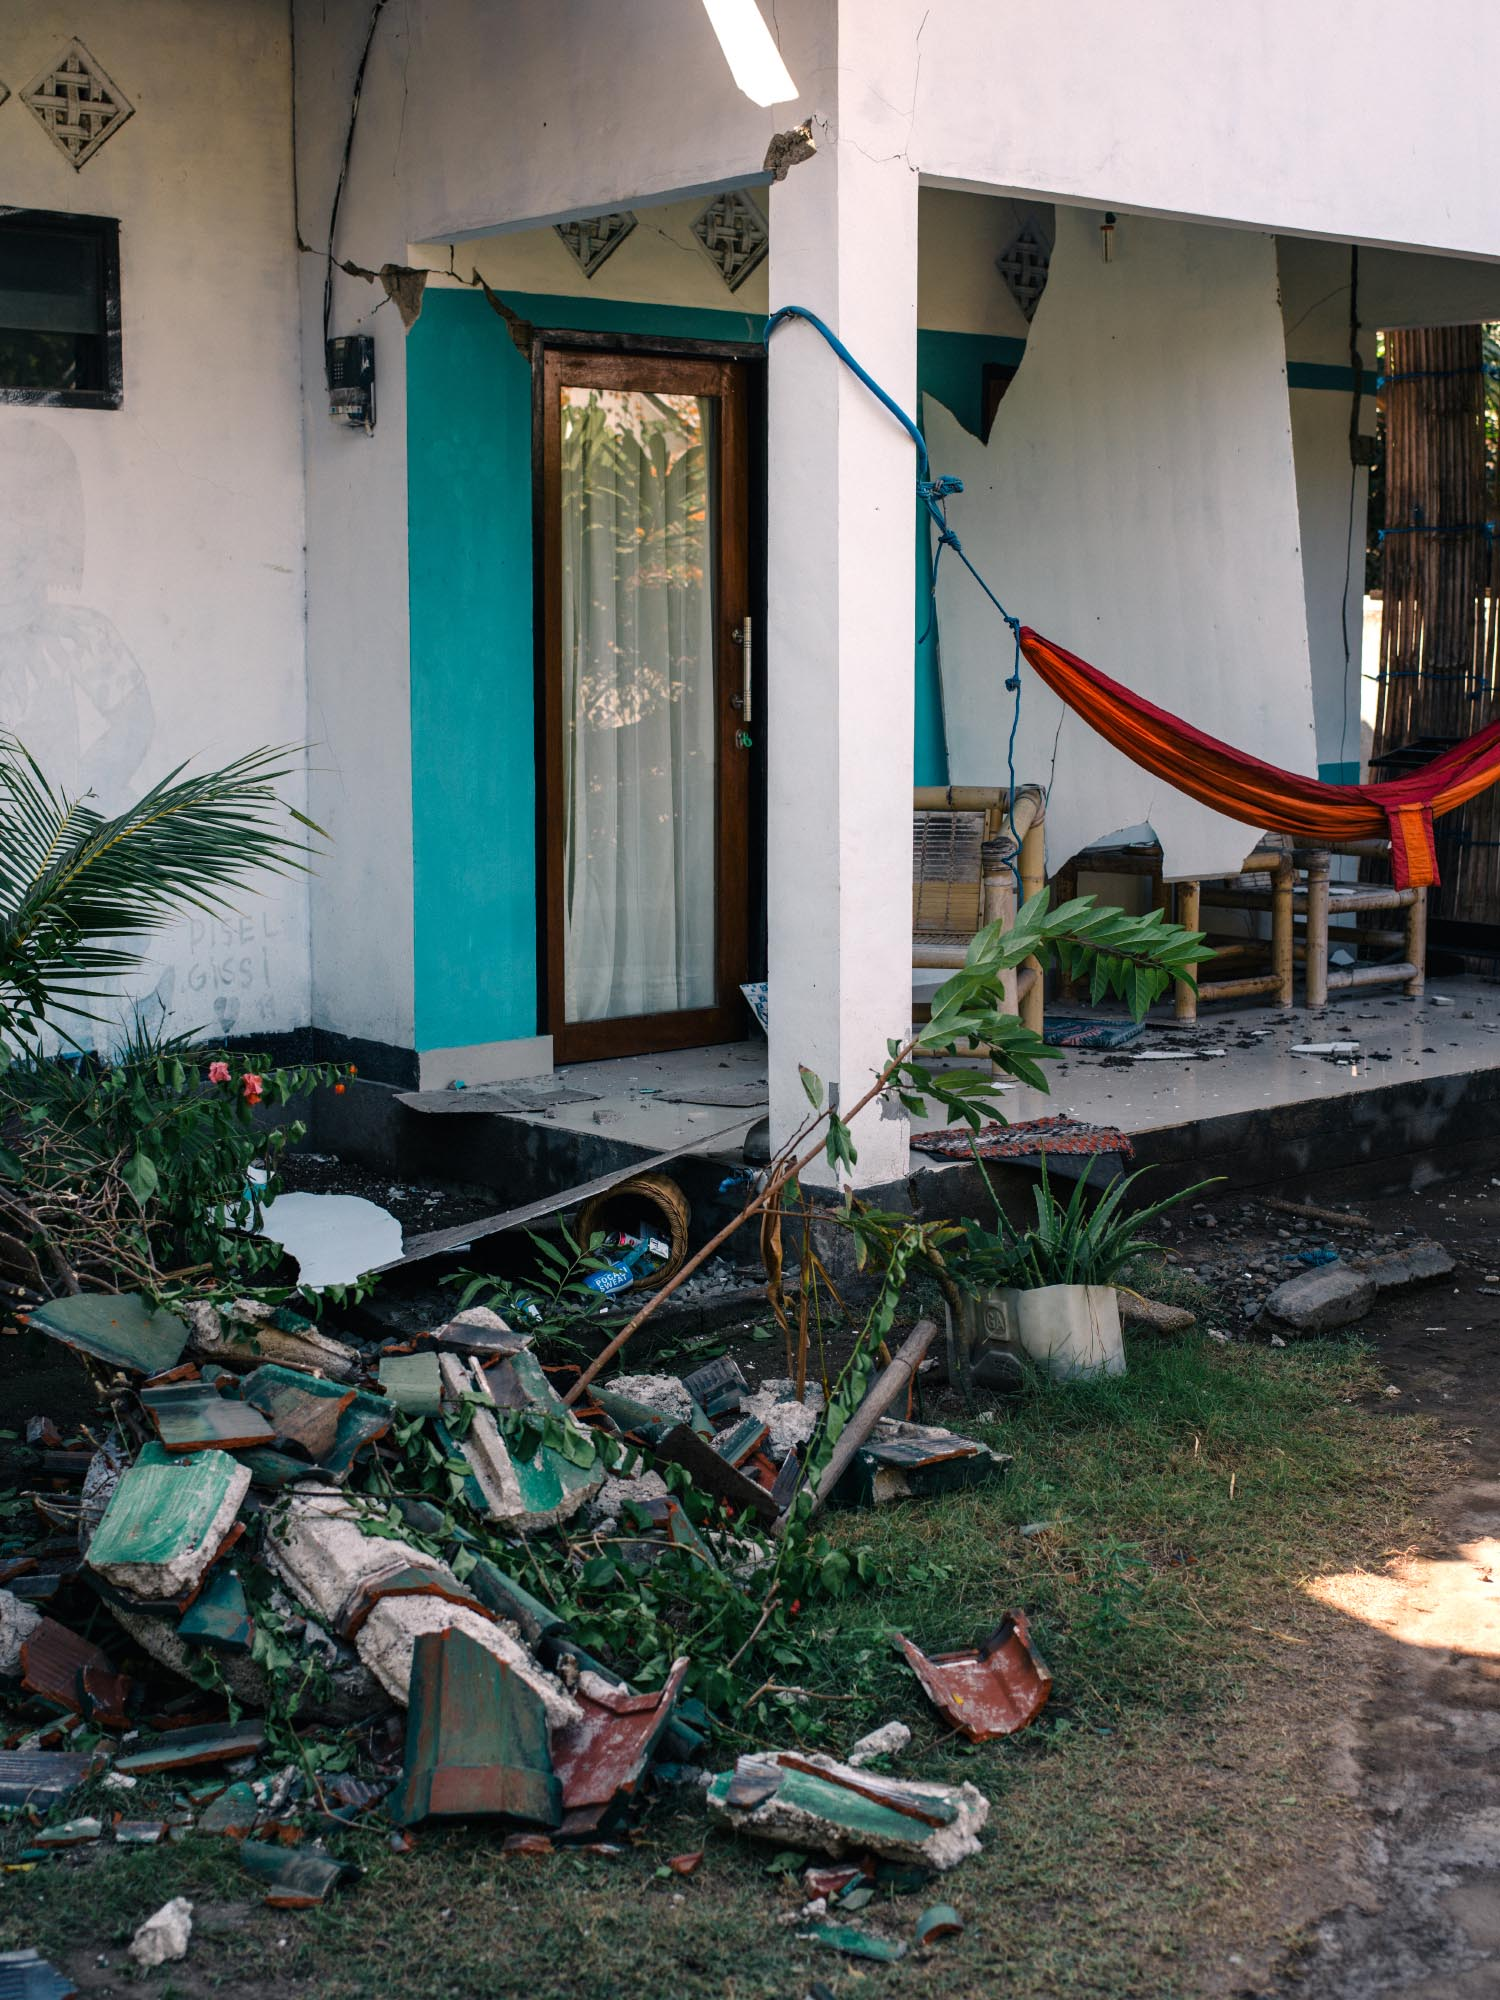 Damage to the bungalows from our guesthouse.